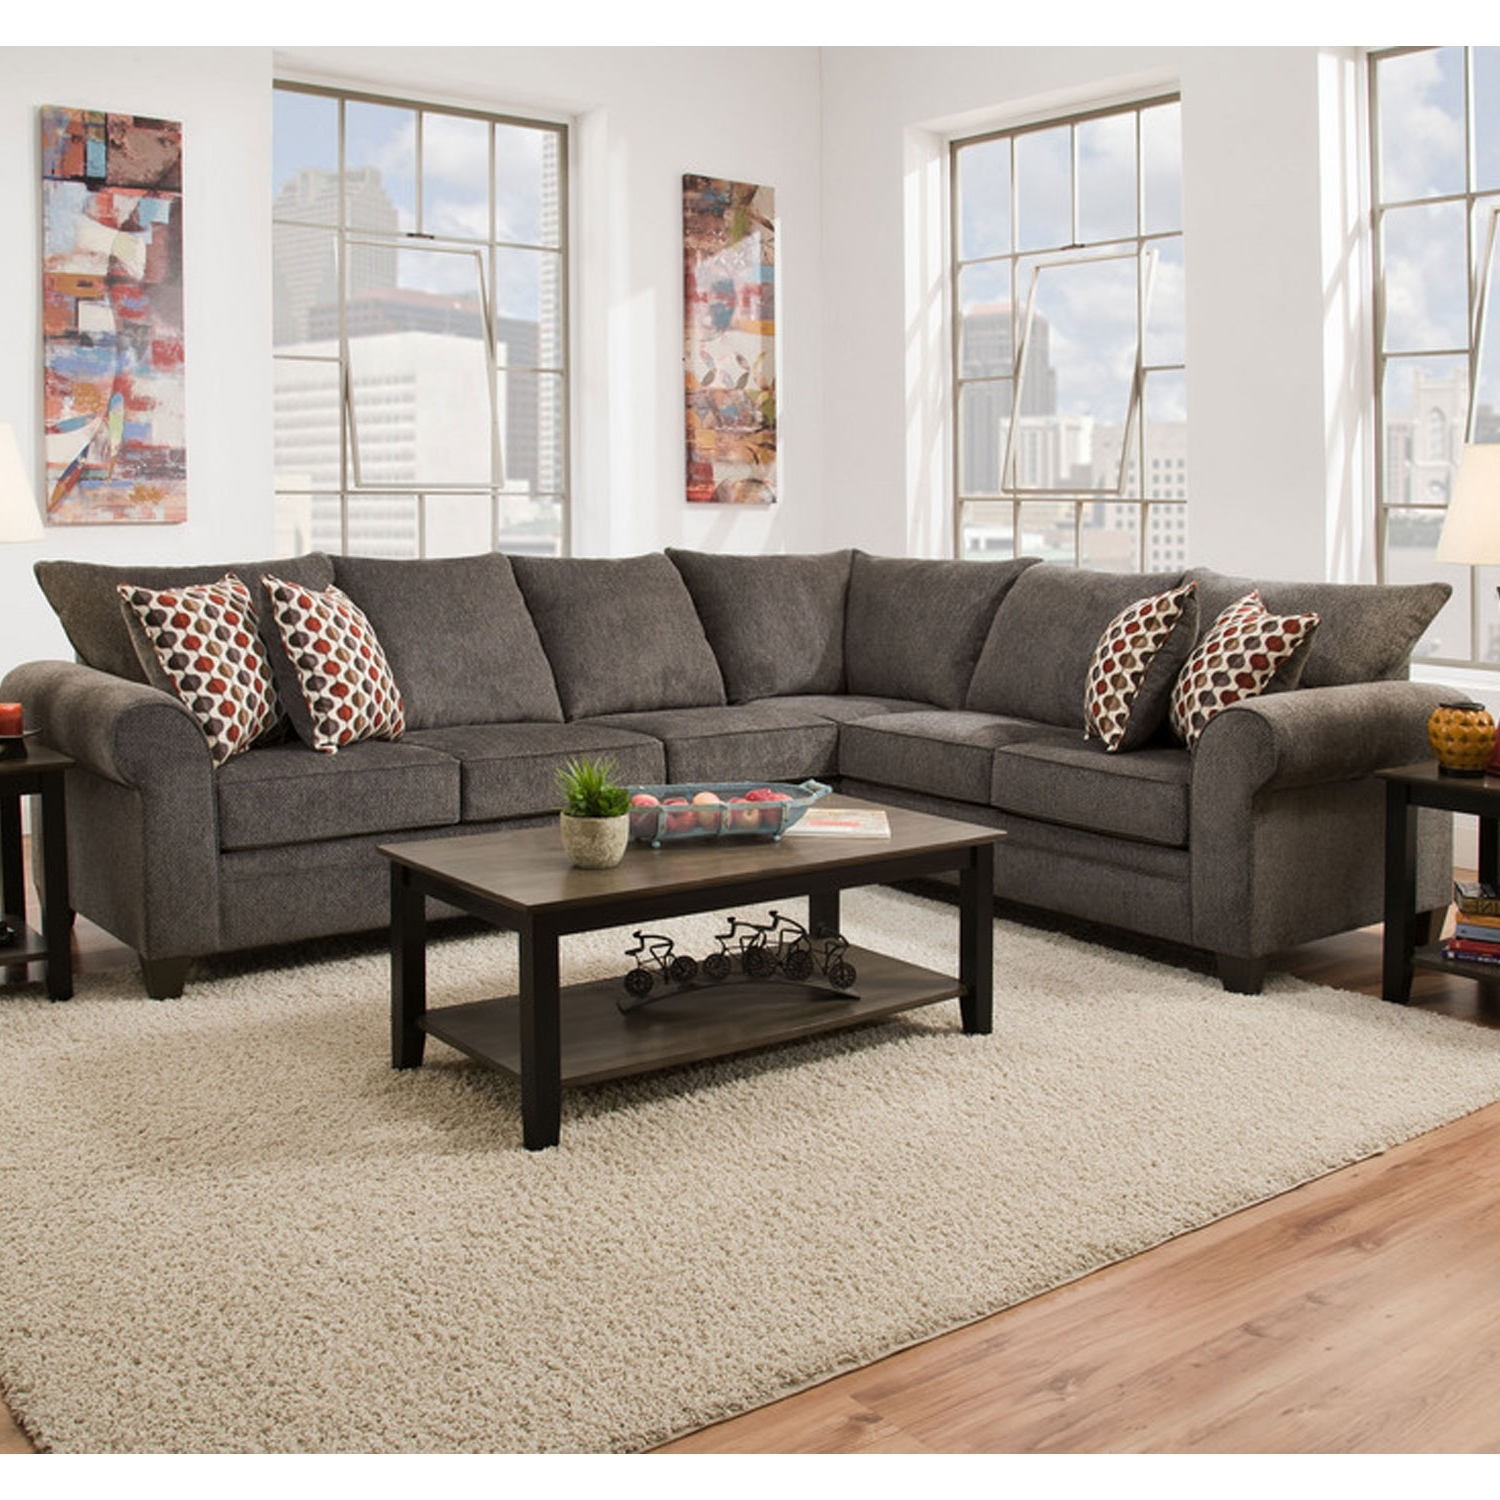 Simmons Sectional Sofas With Most Recently Released Simmons 1647 Sectional Sofa Albany Pewter (View 11 of 15)